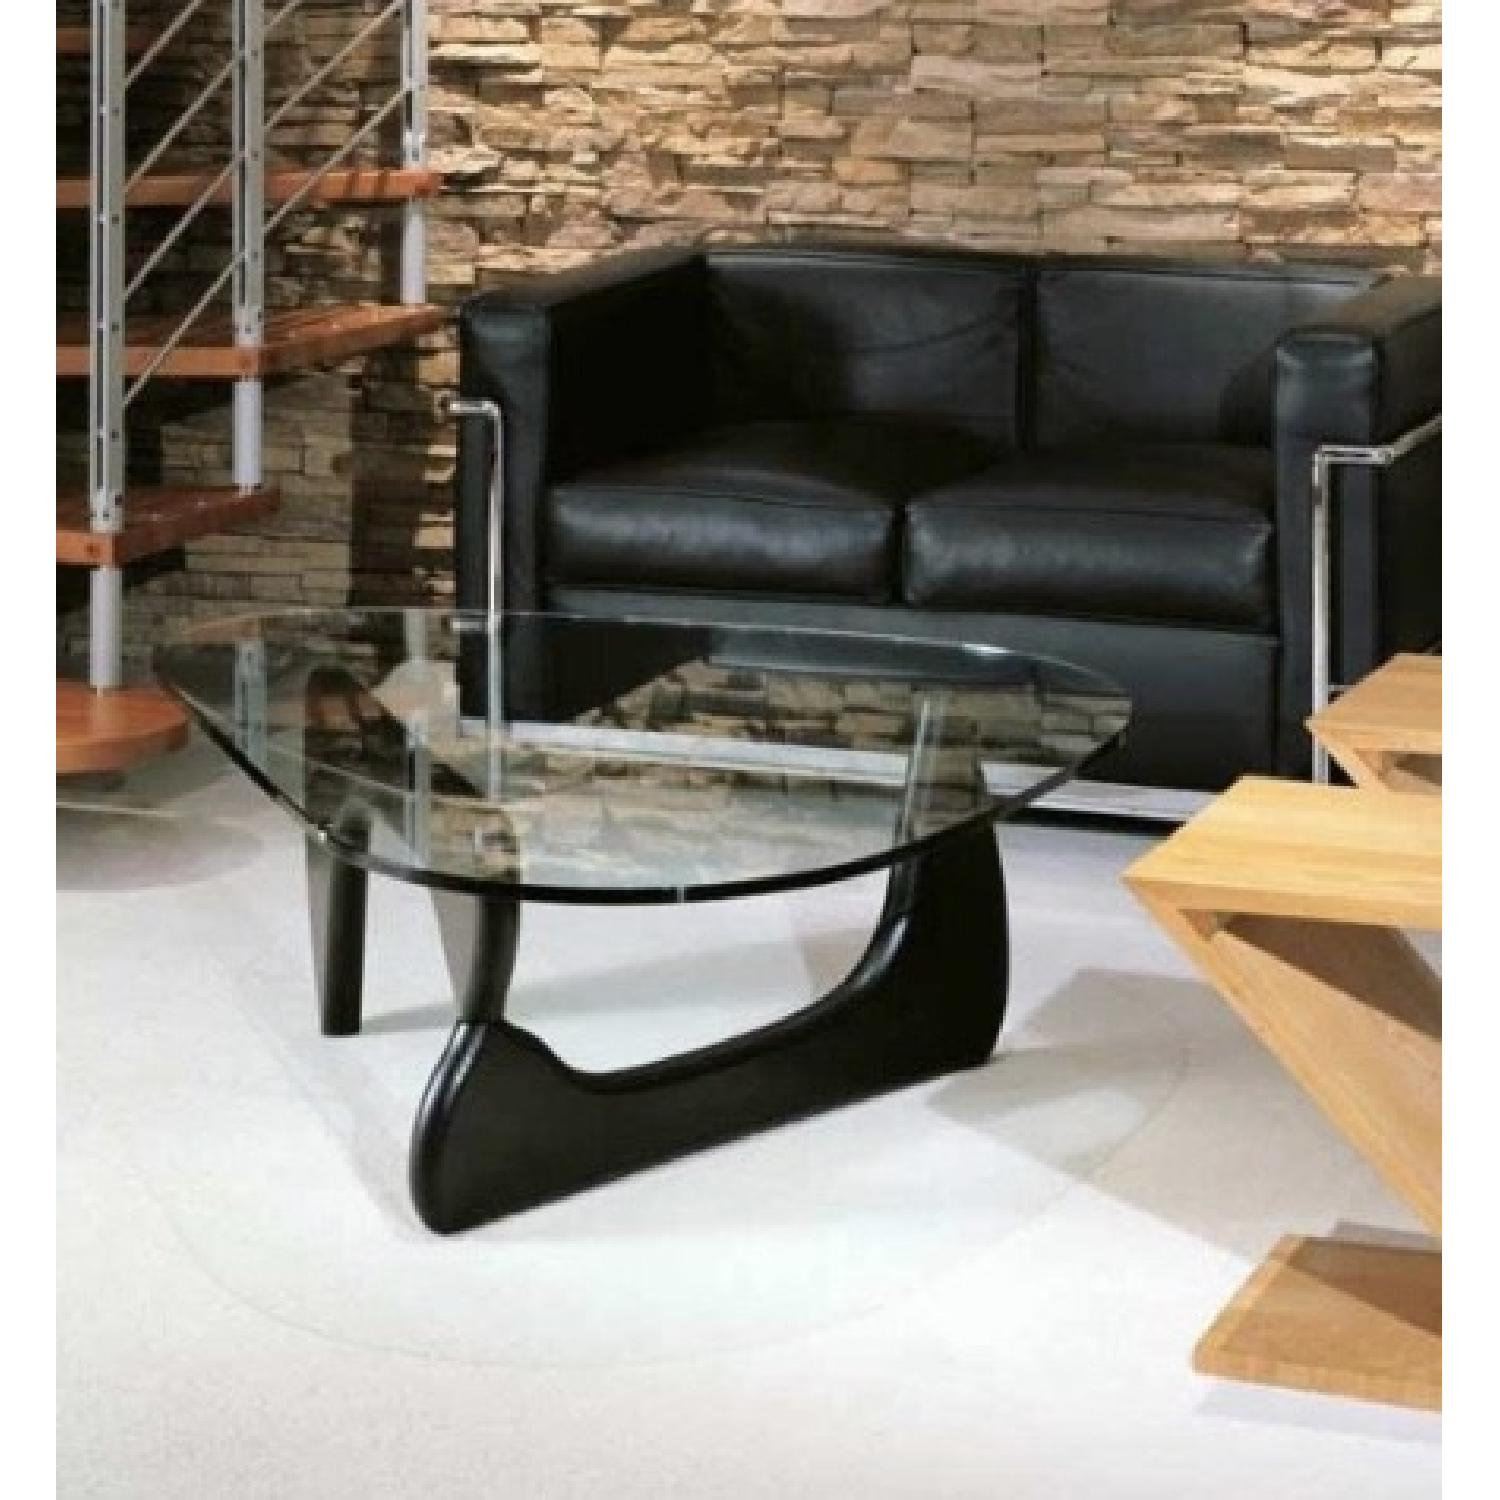 Noguchi Coffee Table Replica in Black